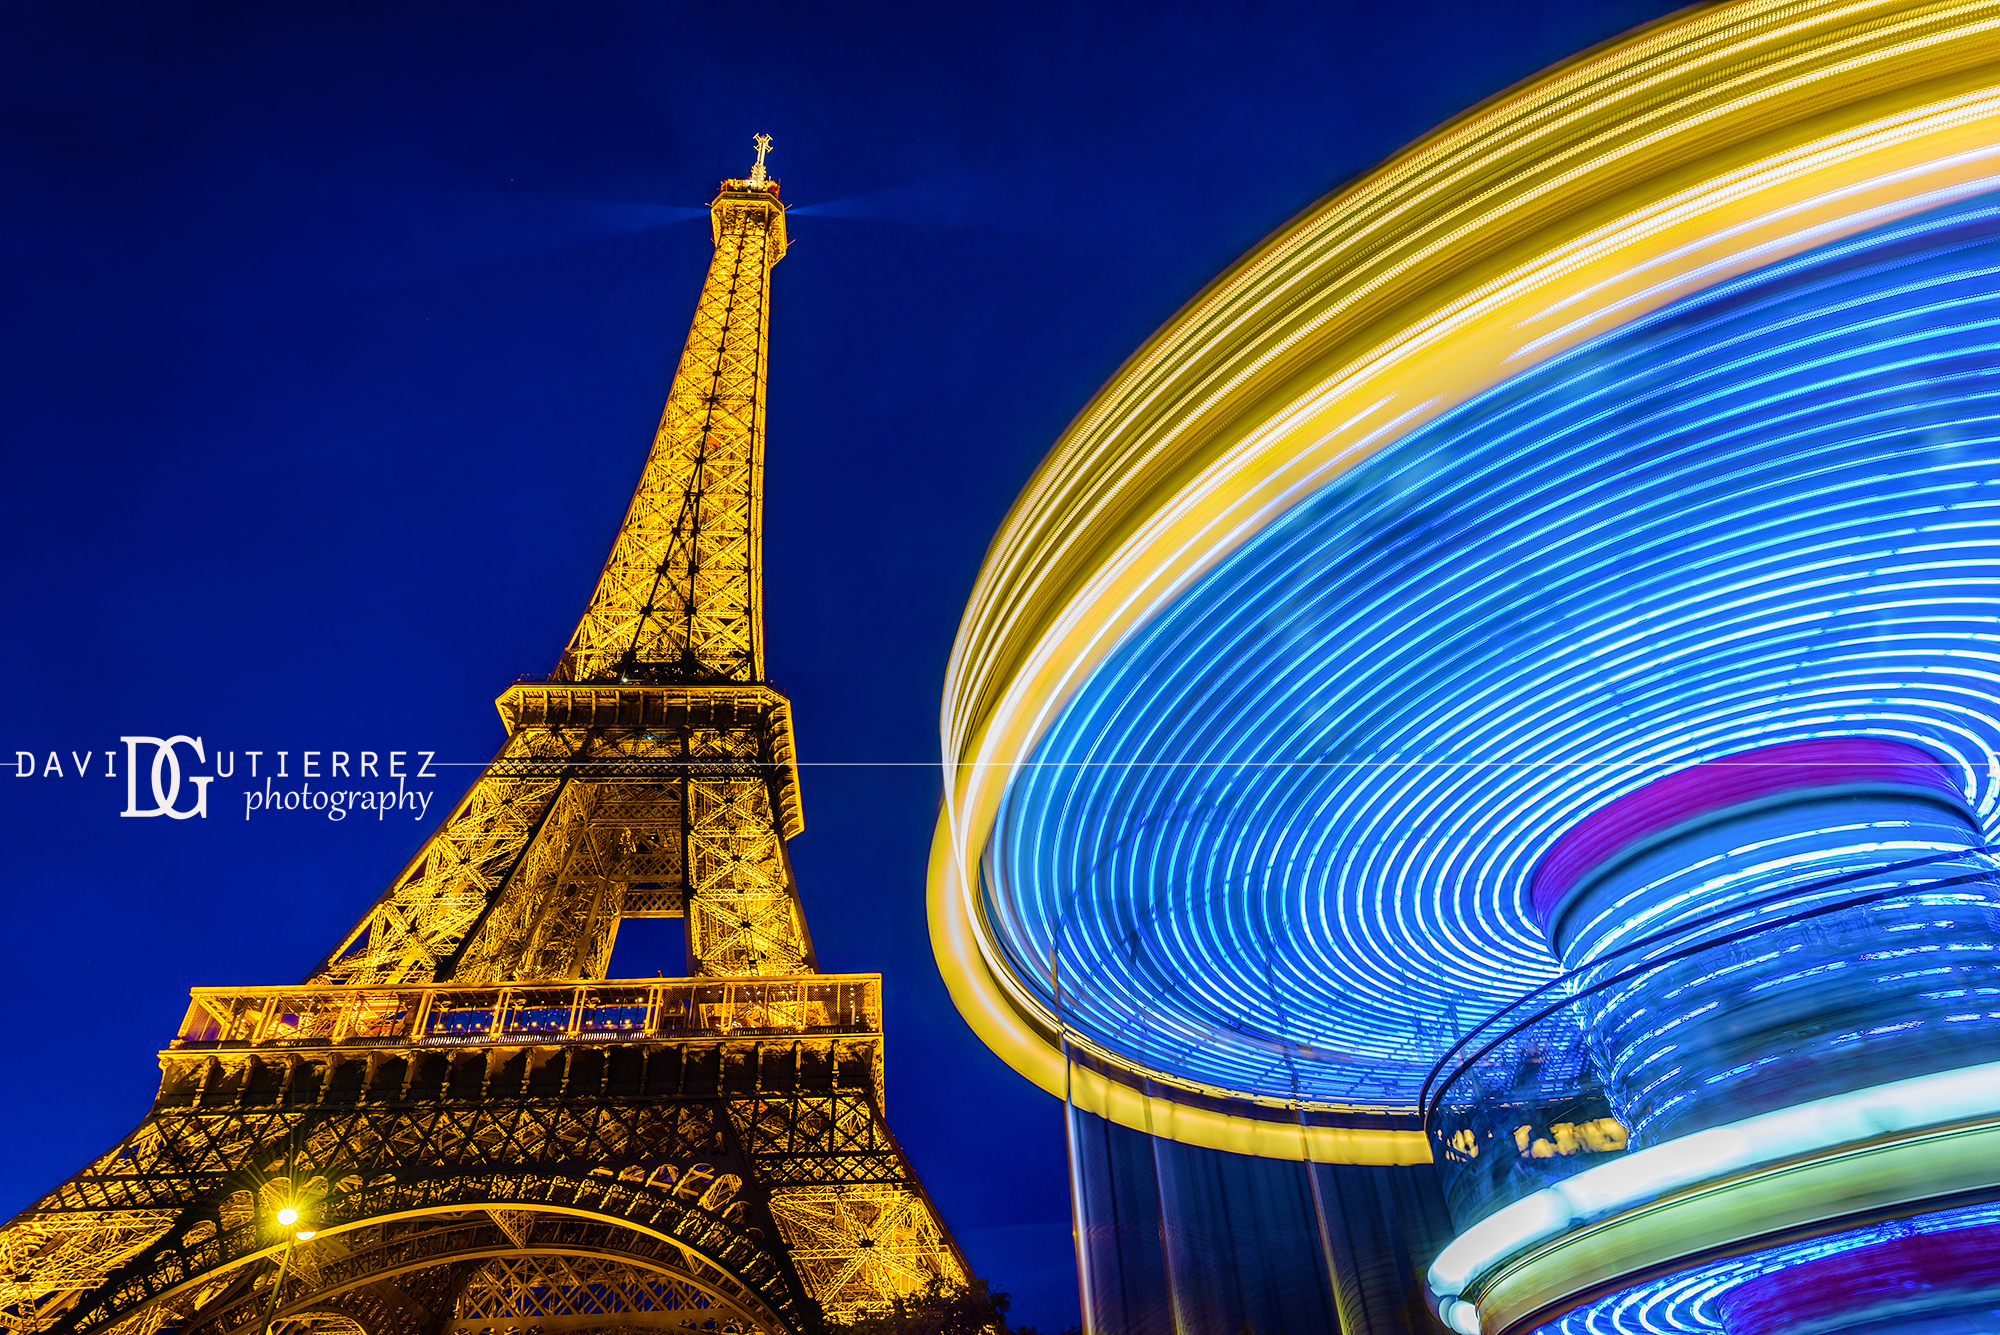 Eiffel Tower and Carousel, Paris, France by David Gutierrez Photography, London Photographer